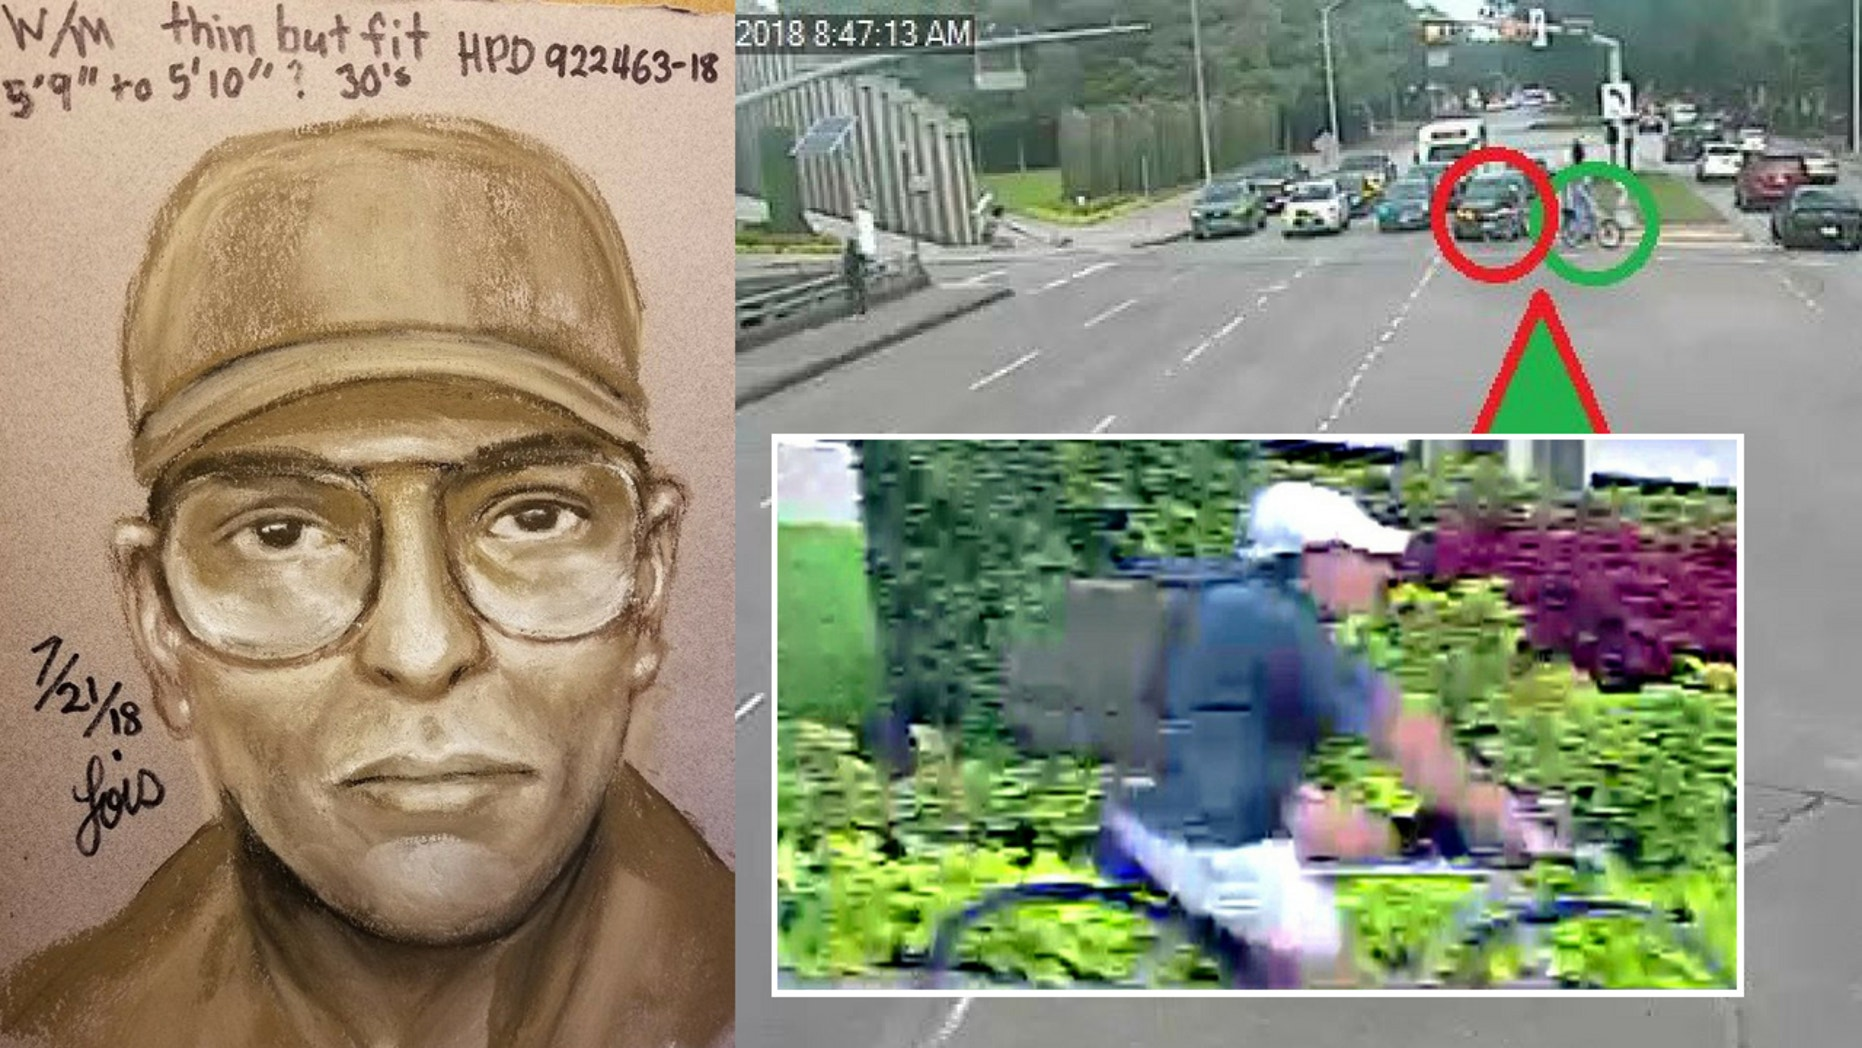 Authorities have released a sketch and surveillance images showing the suspect in Dr. Hausknecht's death.